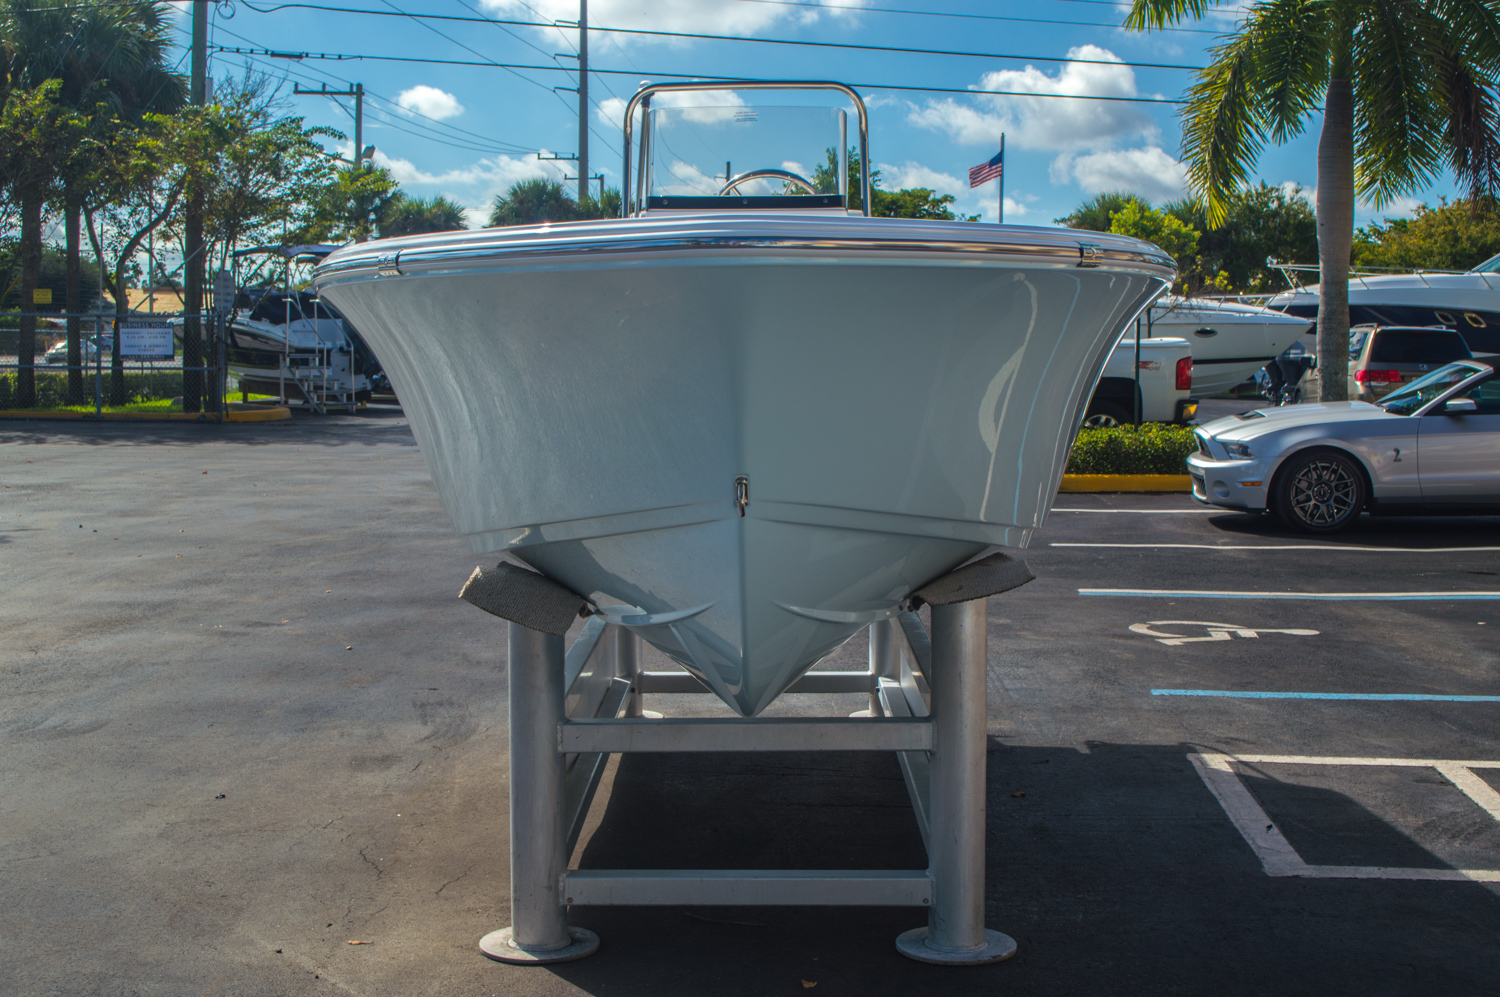 Thumbnail 2 for New 2016 Sportsman 17 Island Reef boat for sale in Vero Beach, FL